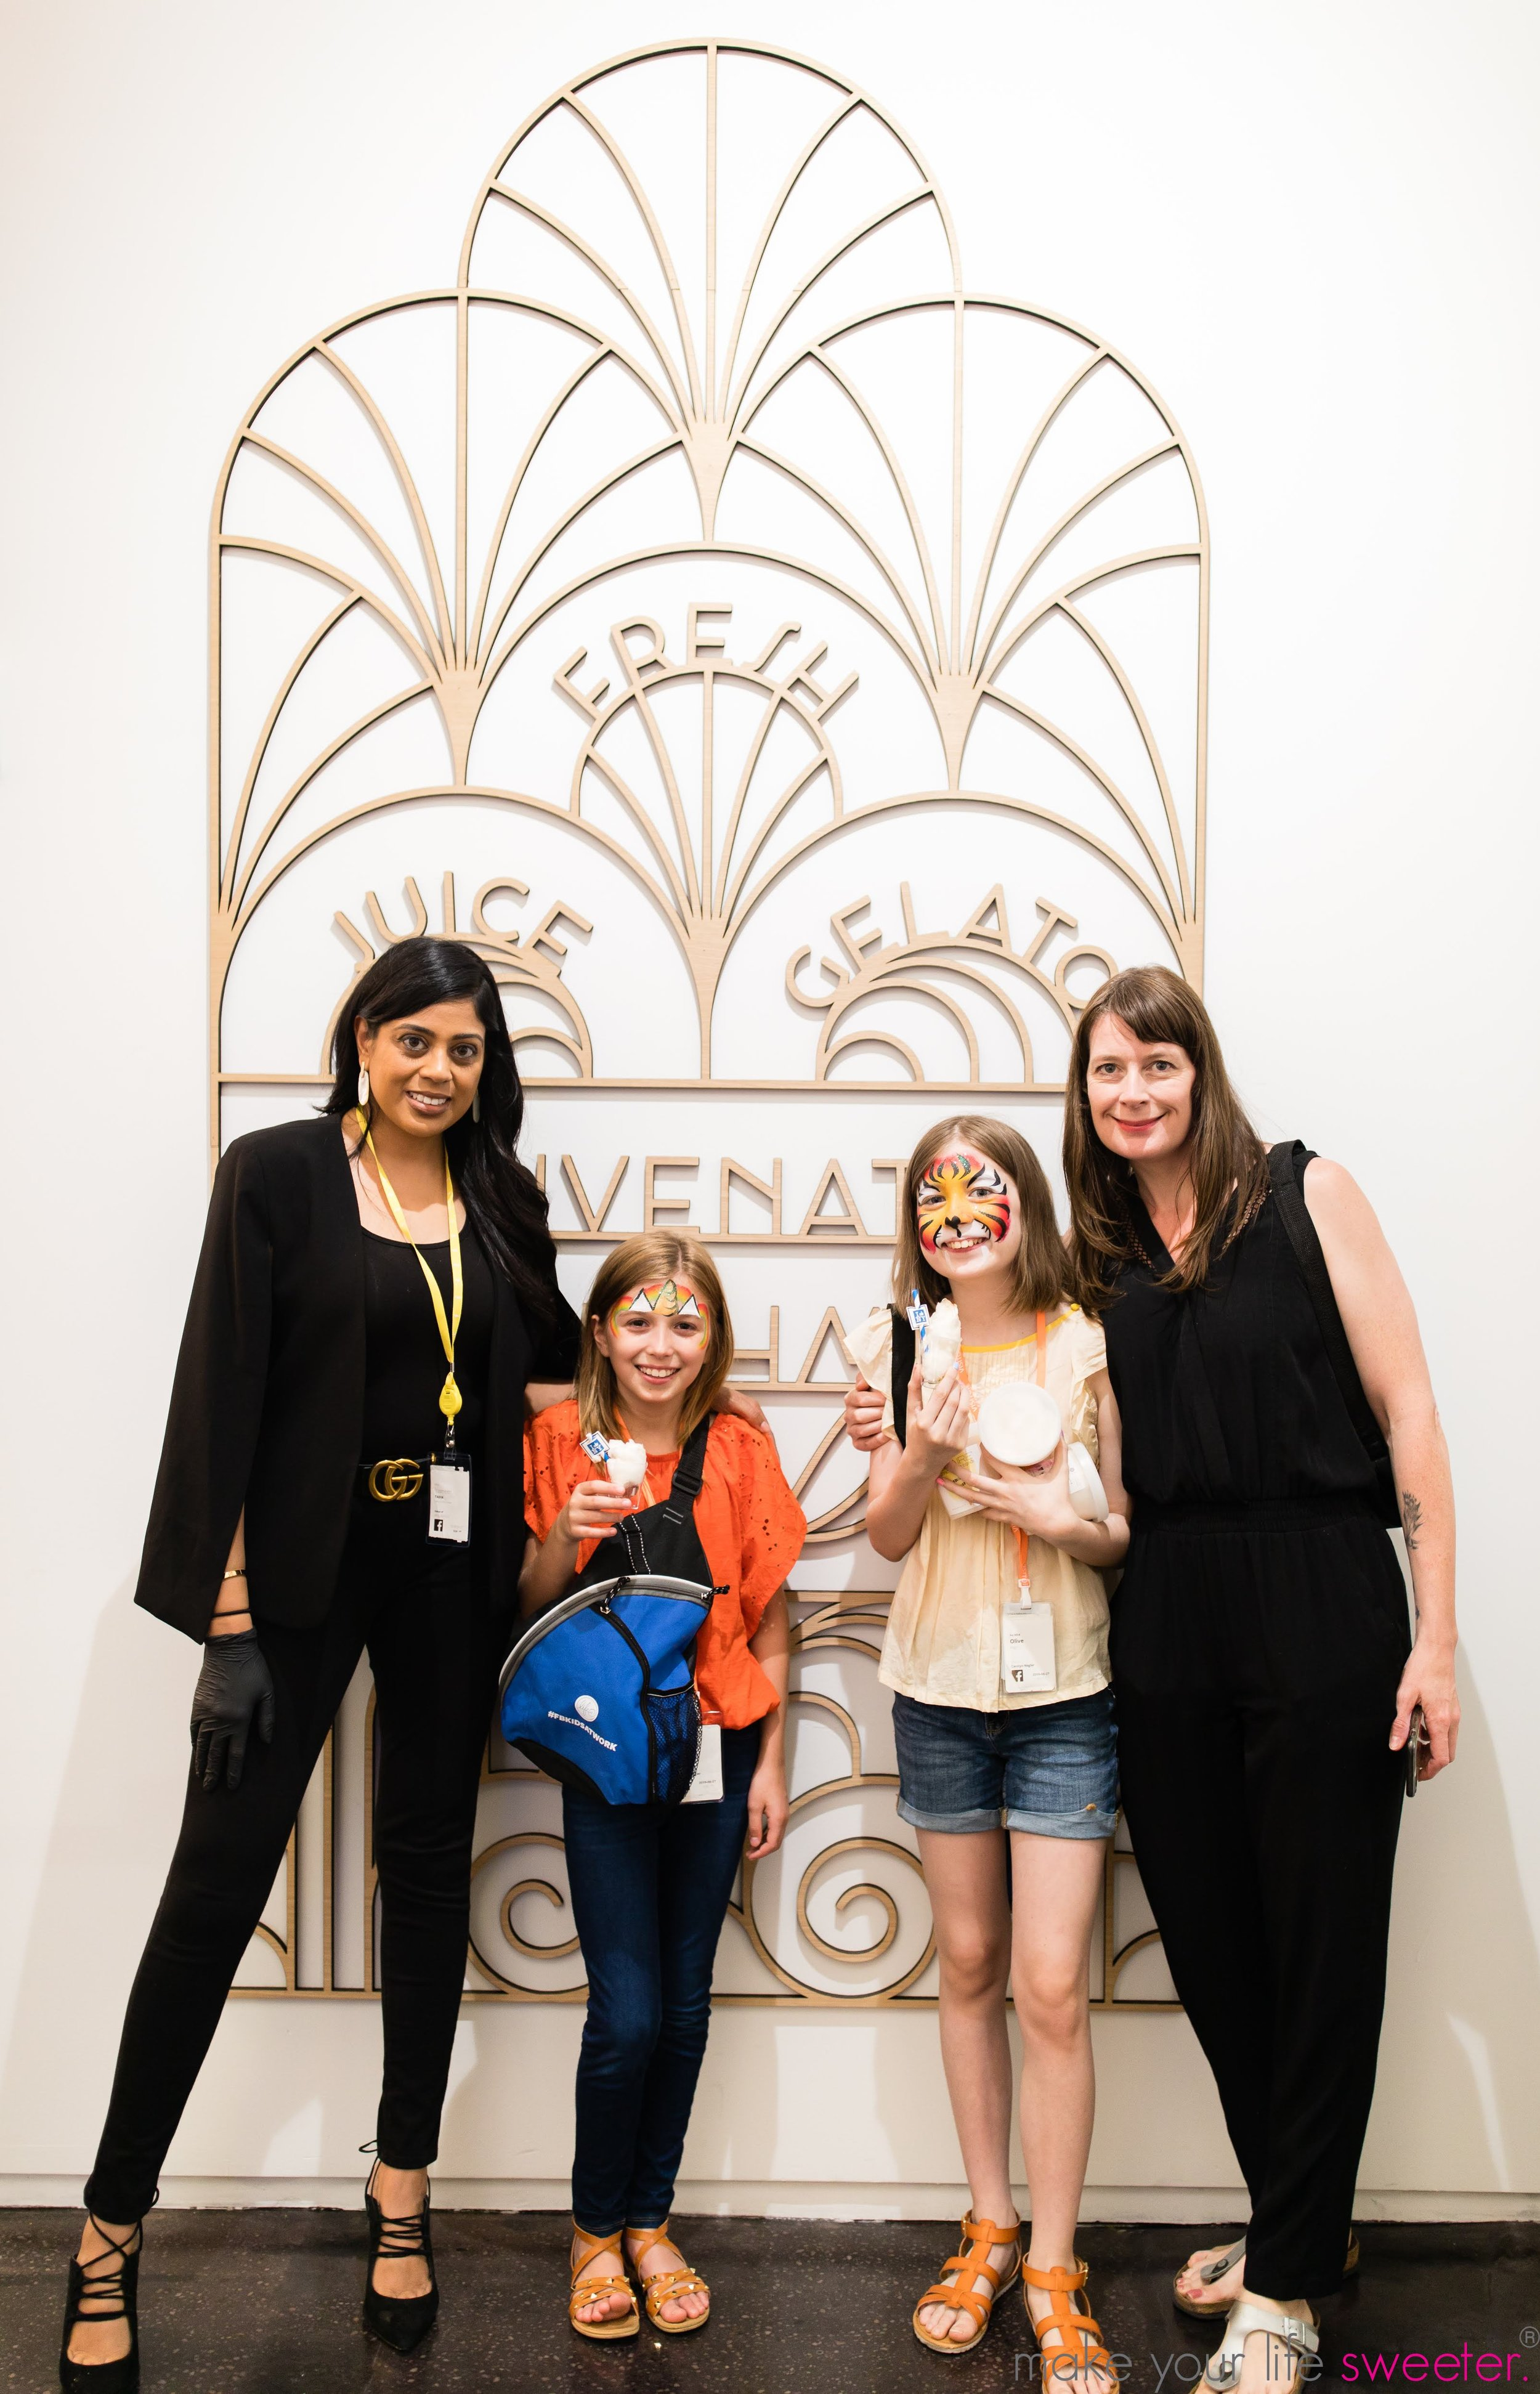 Make Your Life Sweeter Events - Facebook NYC Bring Your Kids to Work Day